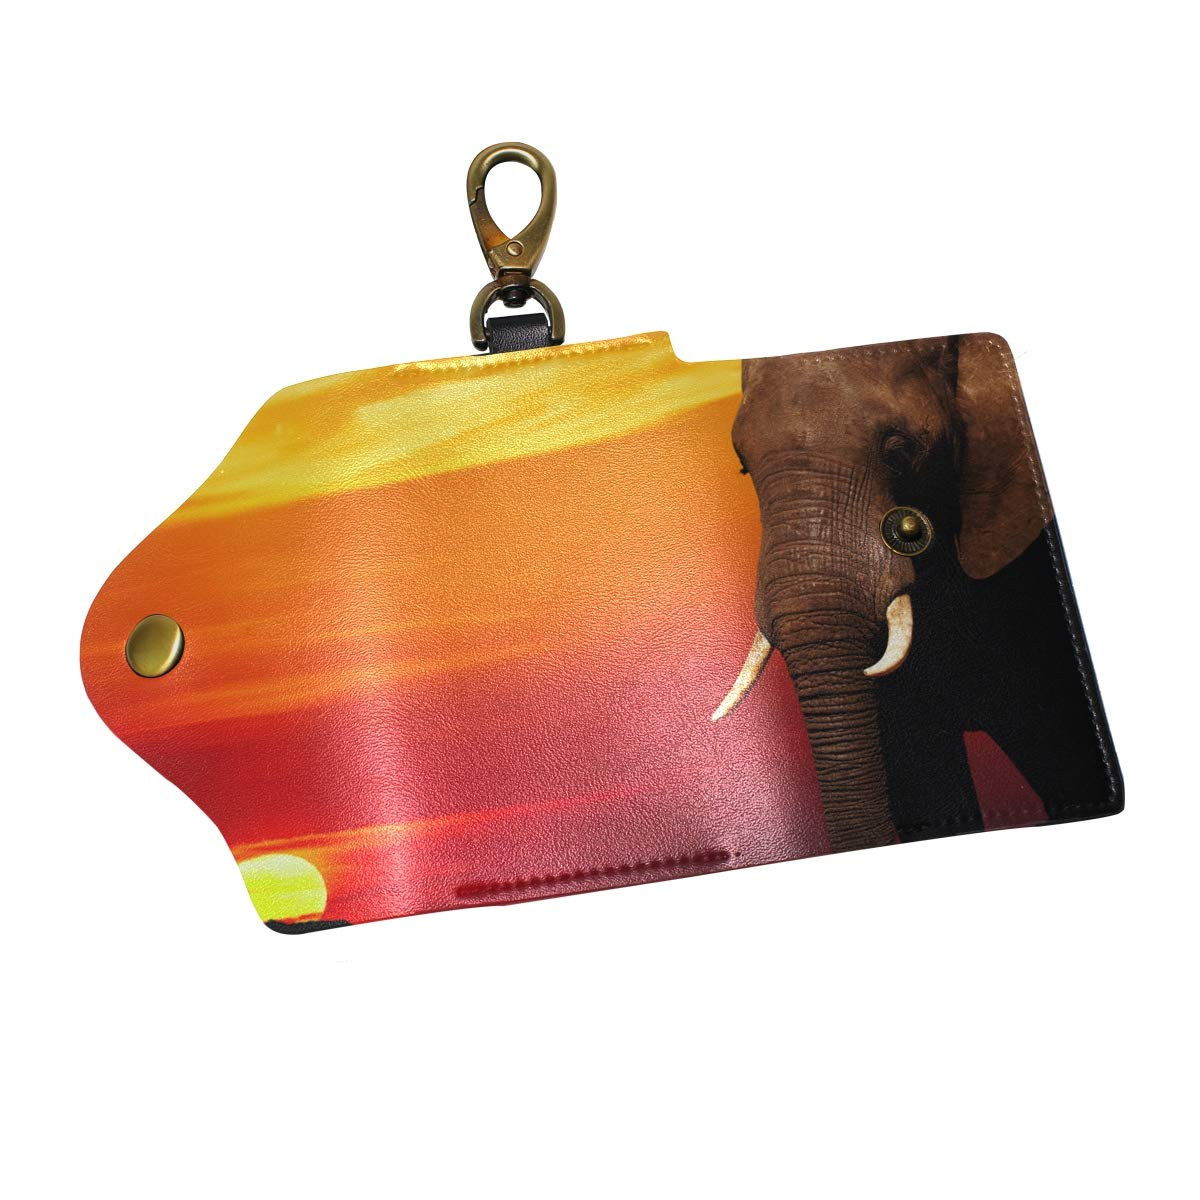 KEAKIA African Elephant At Sunset Leather Key Case Wallets Tri-fold Key Holder Keychains with 6 Hooks 2 Slot Snap Closure for Men Women